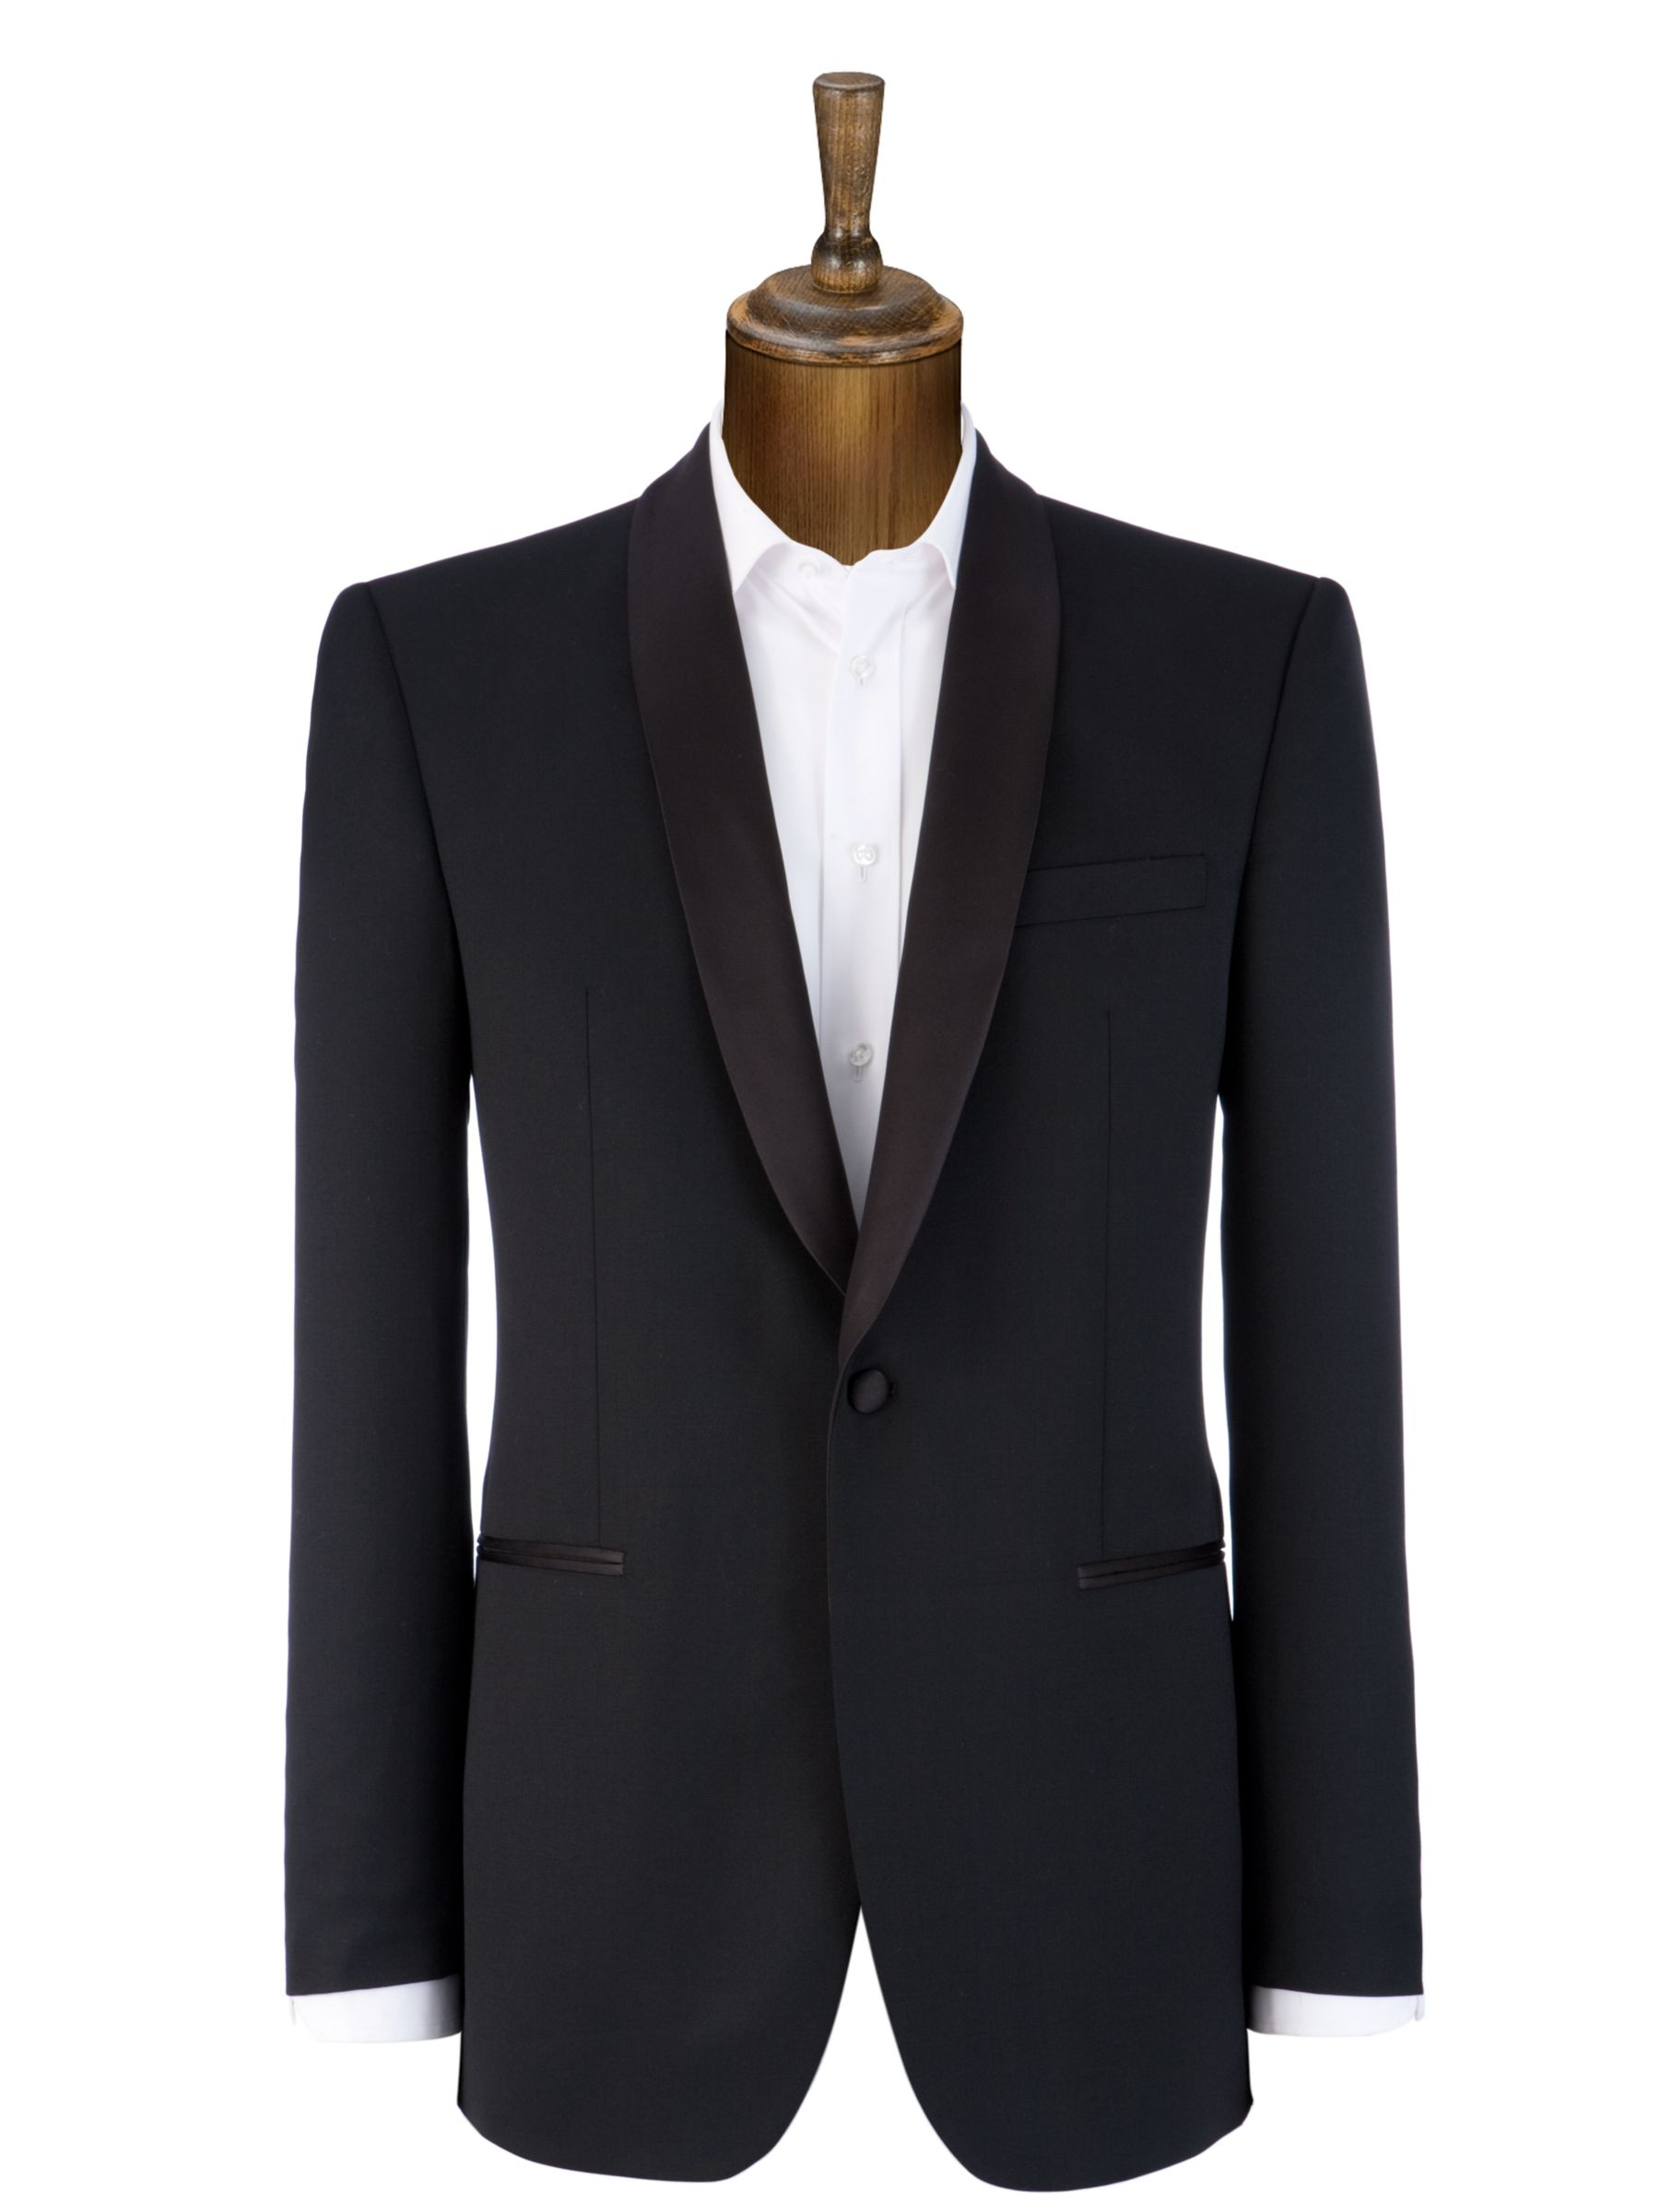 John Lewis Men Victor Shawl Neck Evening Suit Jacket, Black at John Lewis